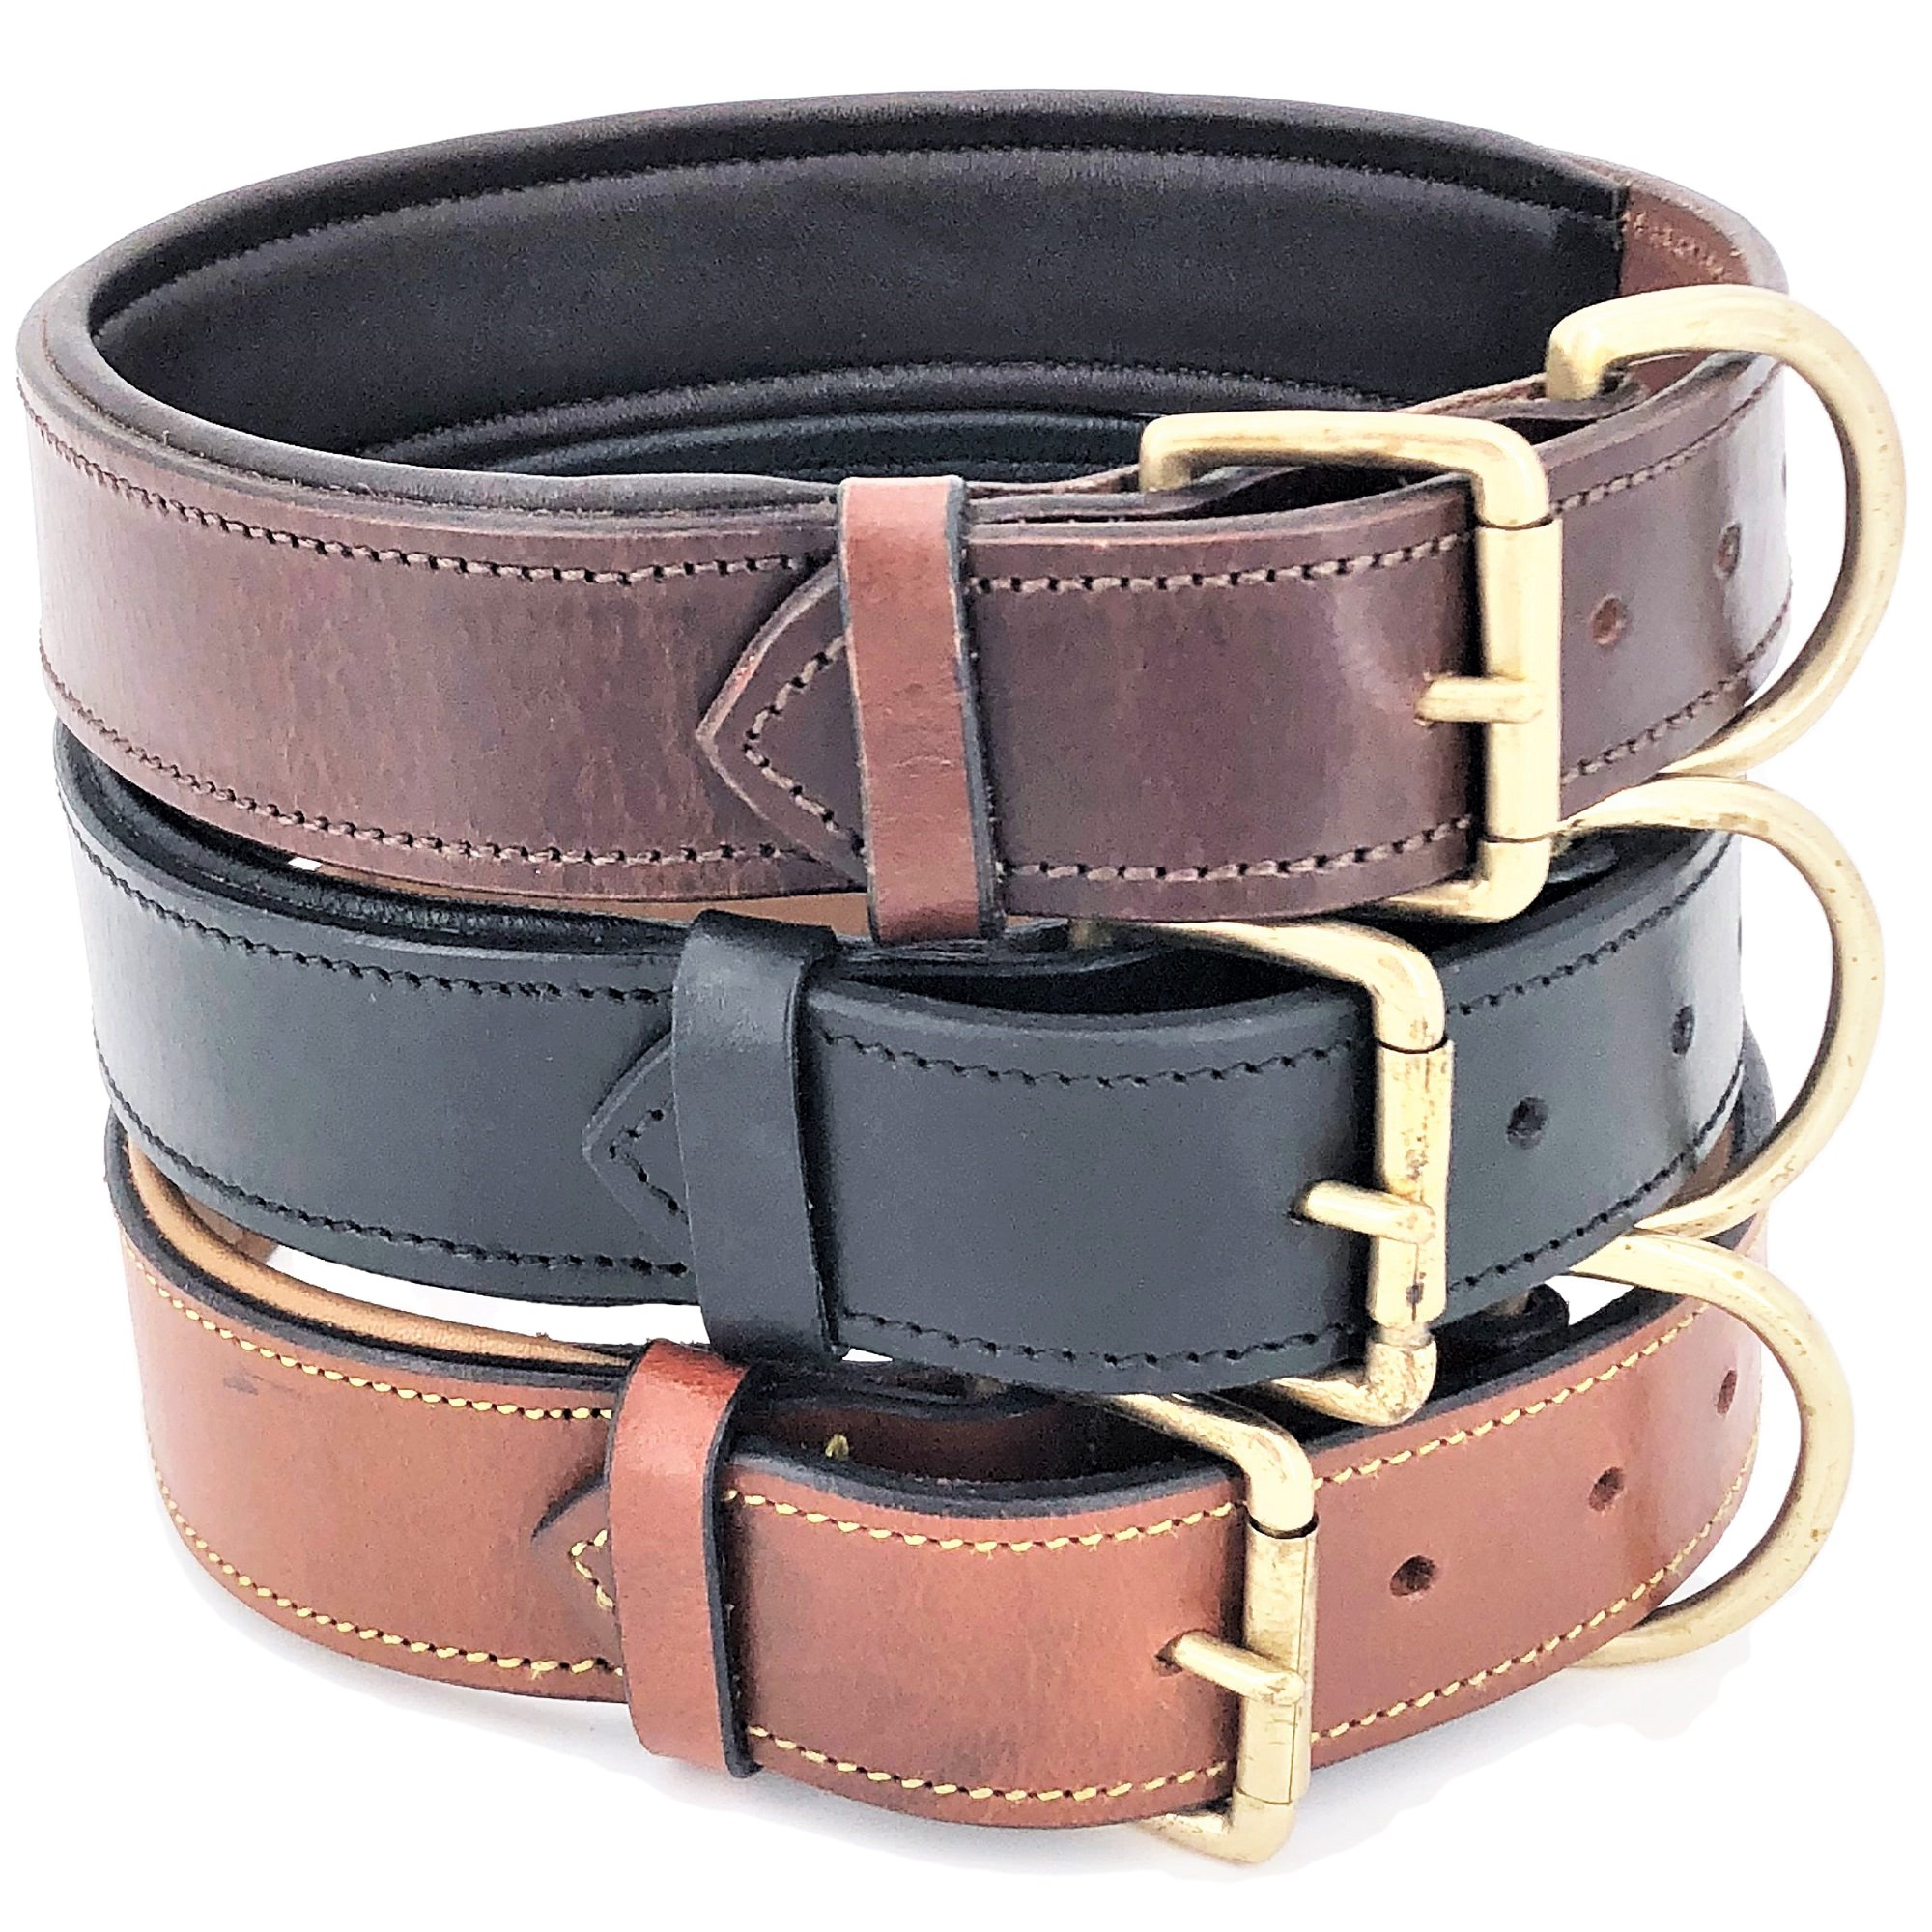 """Genuine Real Leather Padded Dog Collar 1.5"""" Width Heavy Duty for Medium and Large Pet sz M (Neck 13"""" - 15"""")"""